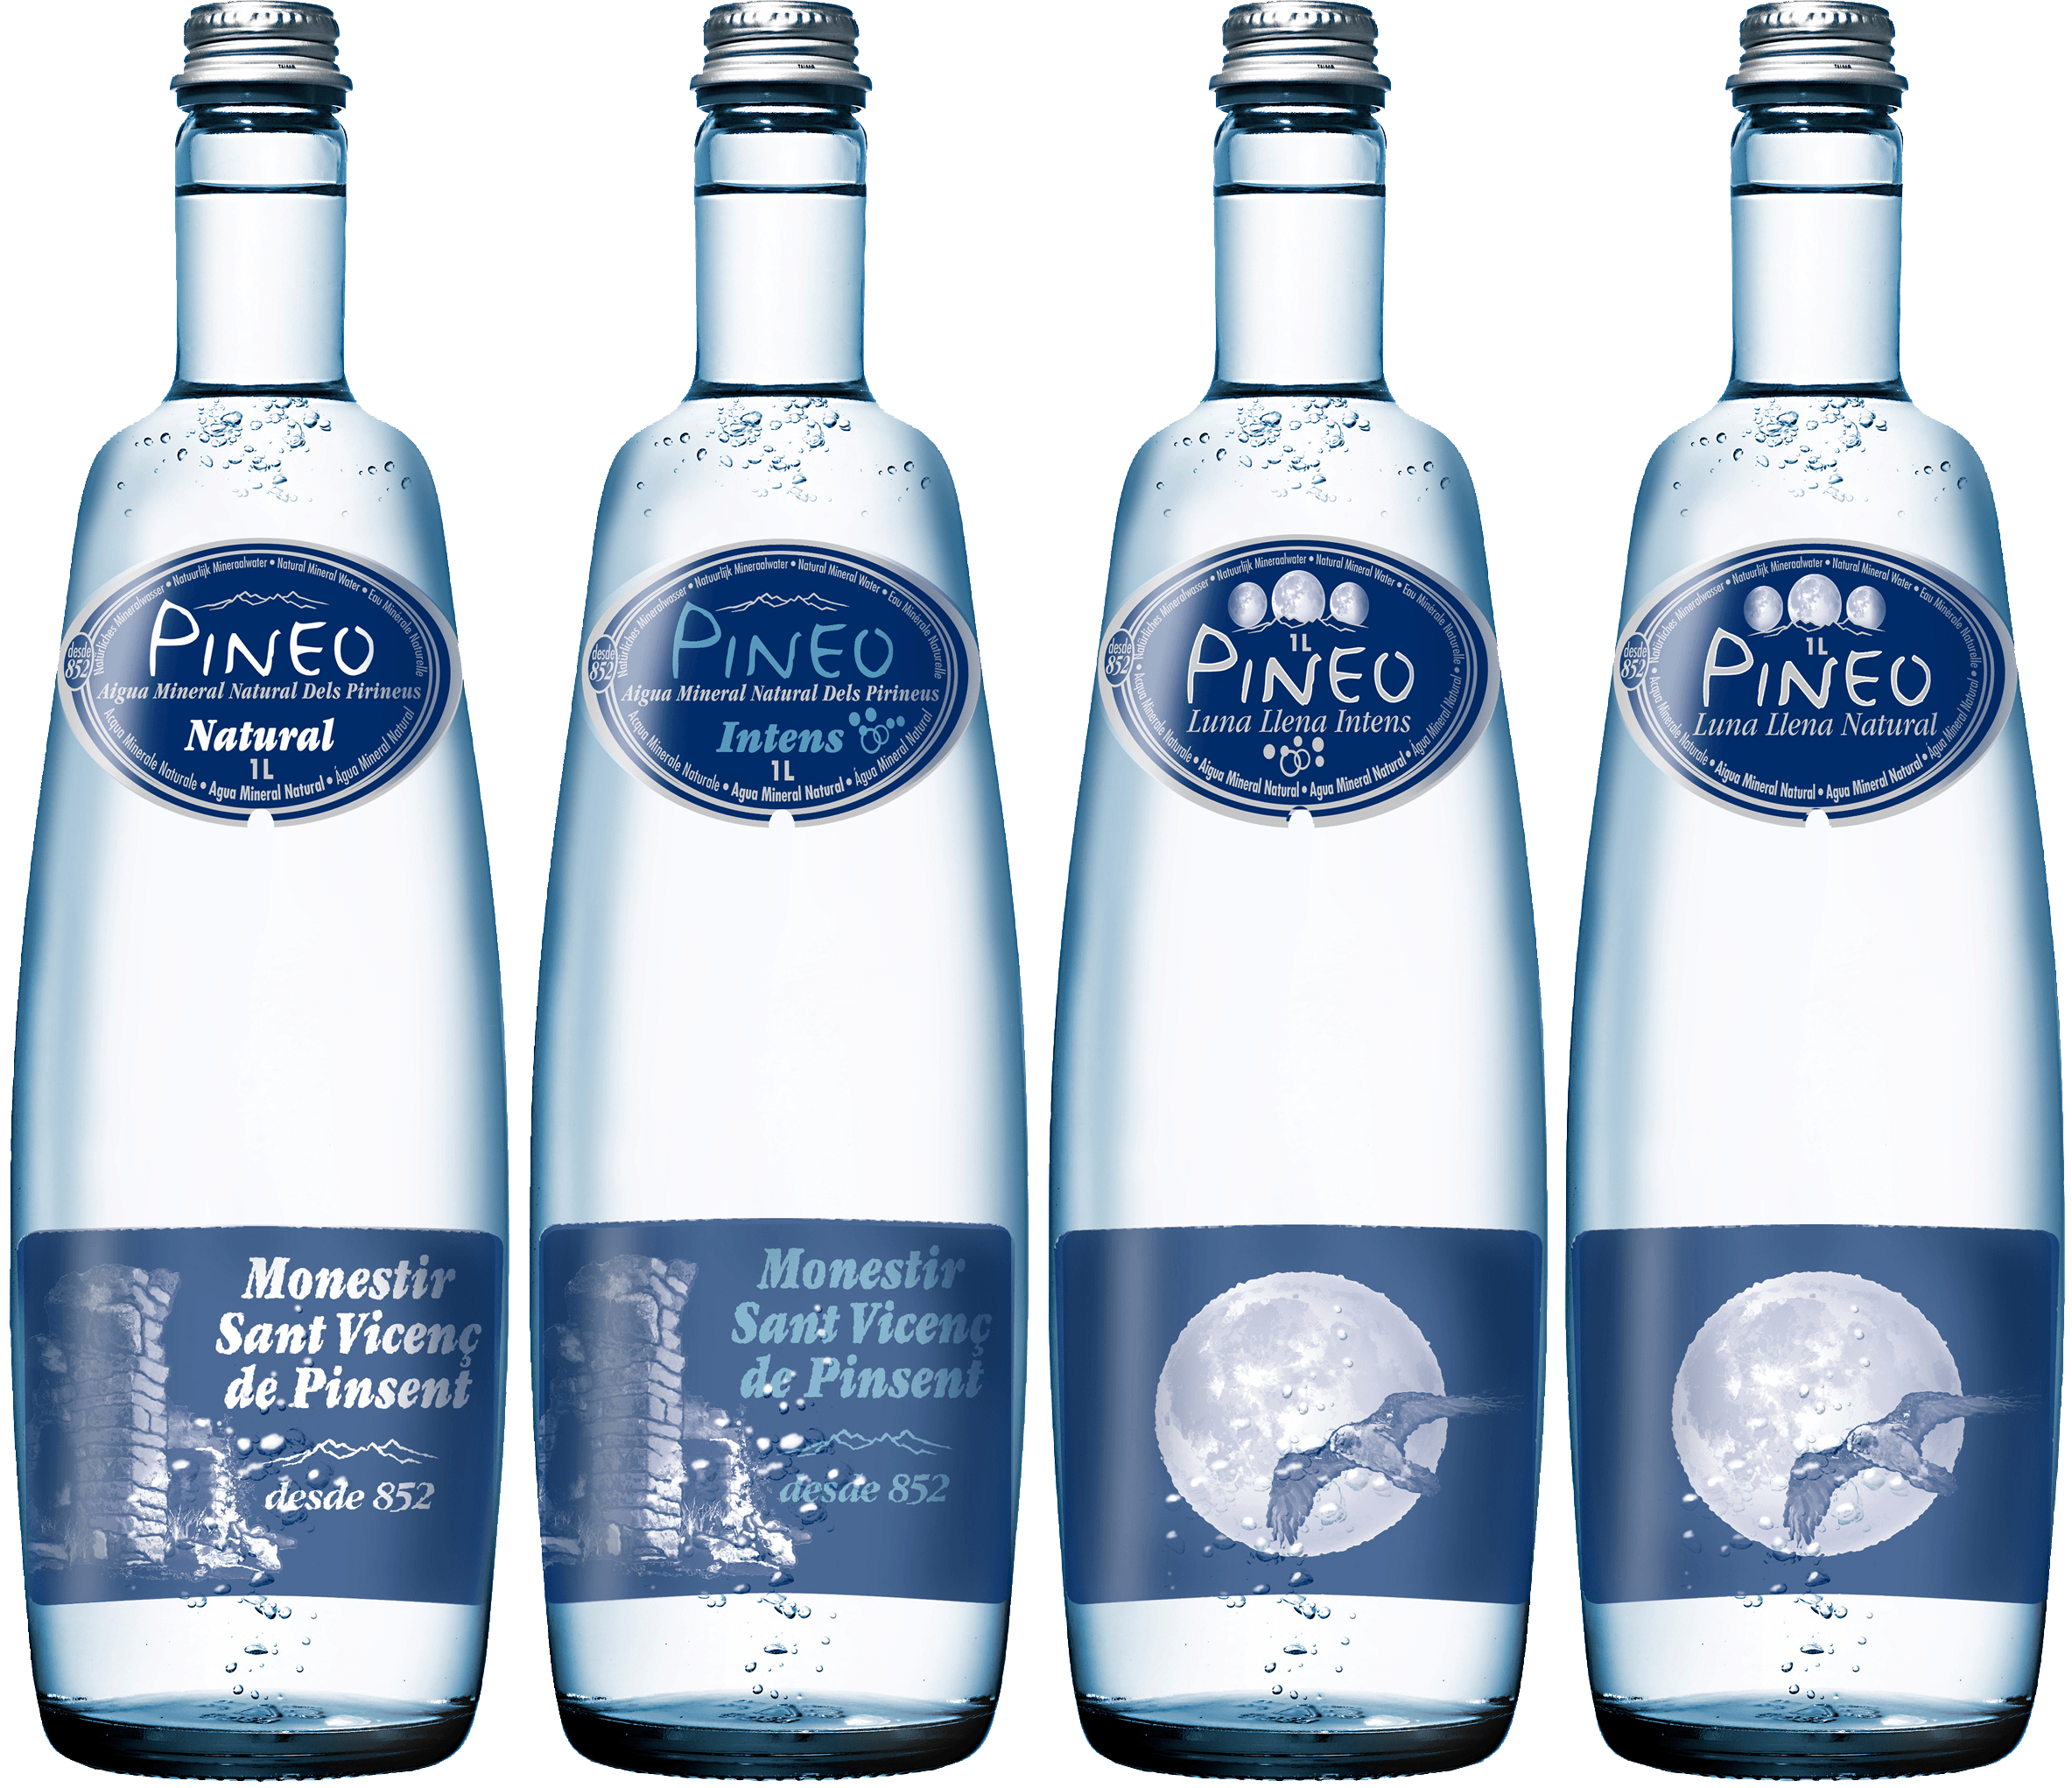 Healthy Pineo water